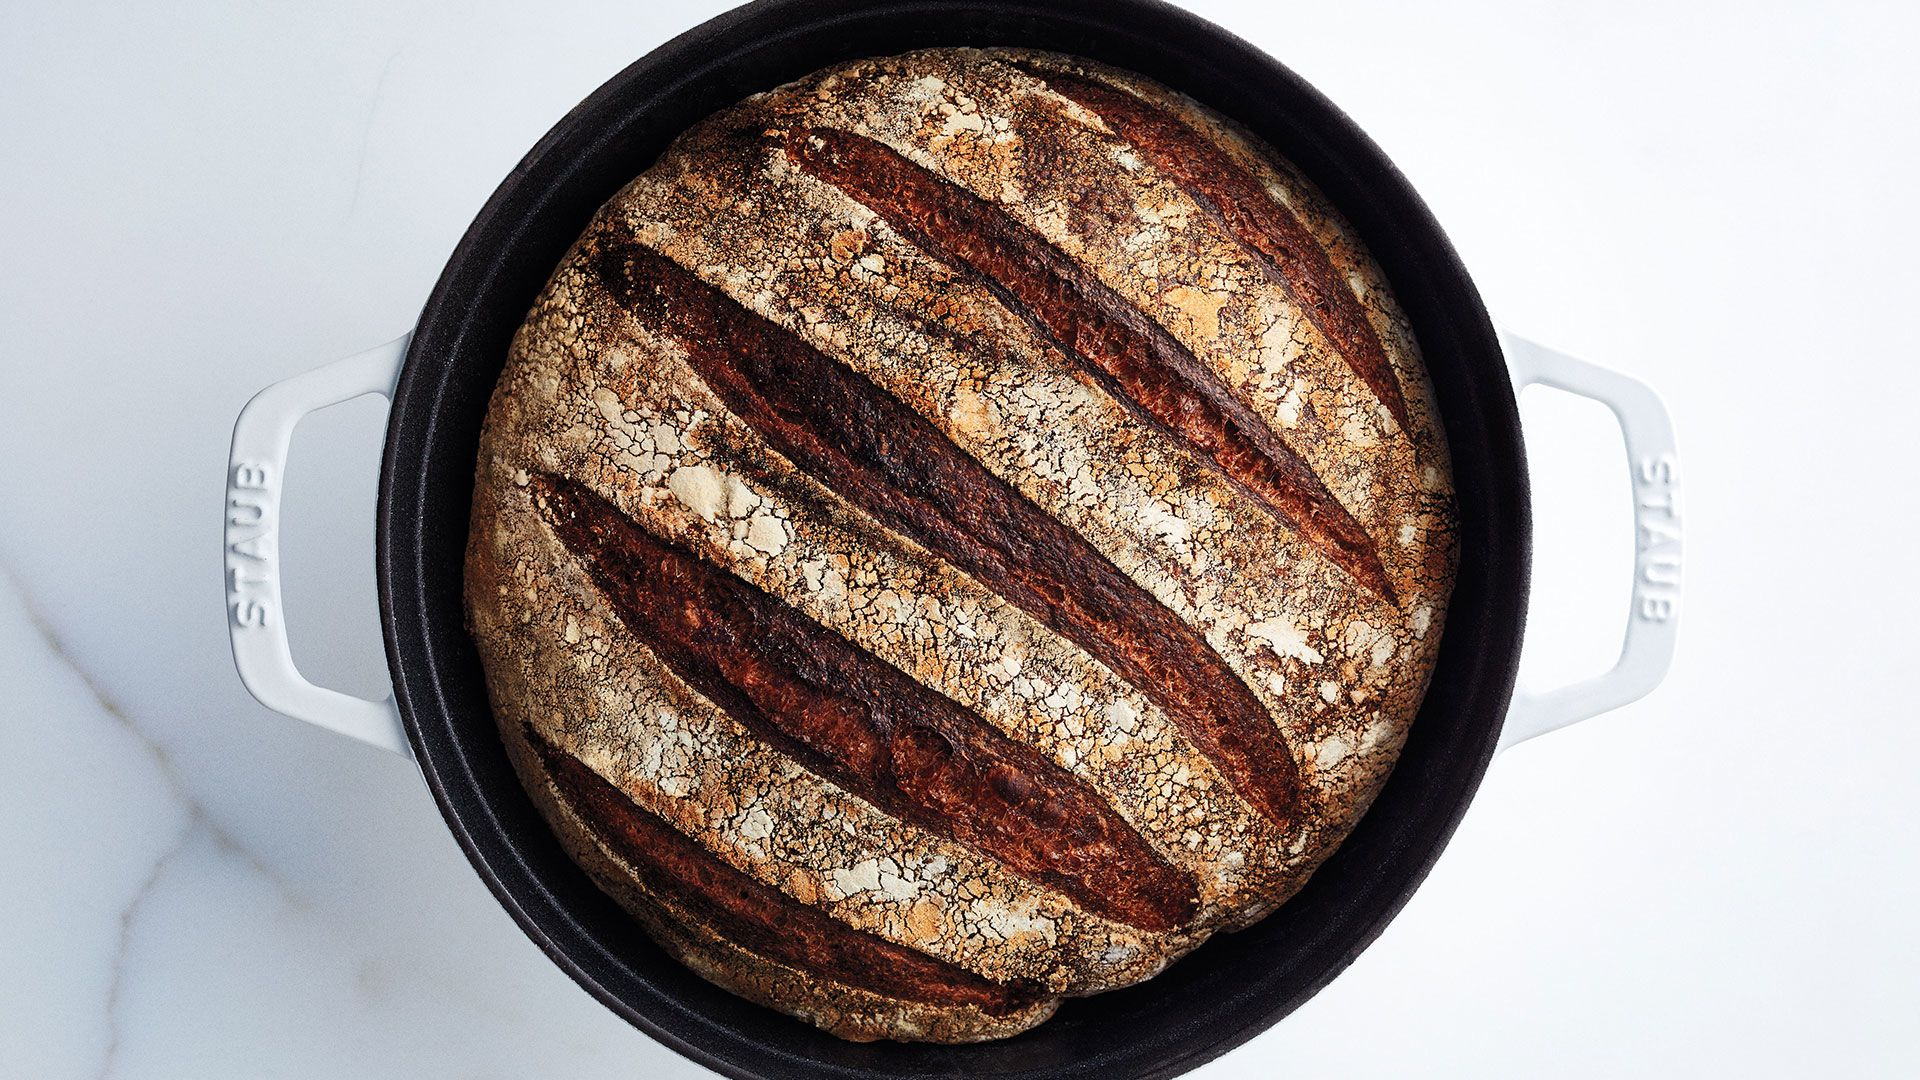 The Best Bread You'll Ever Make at Home